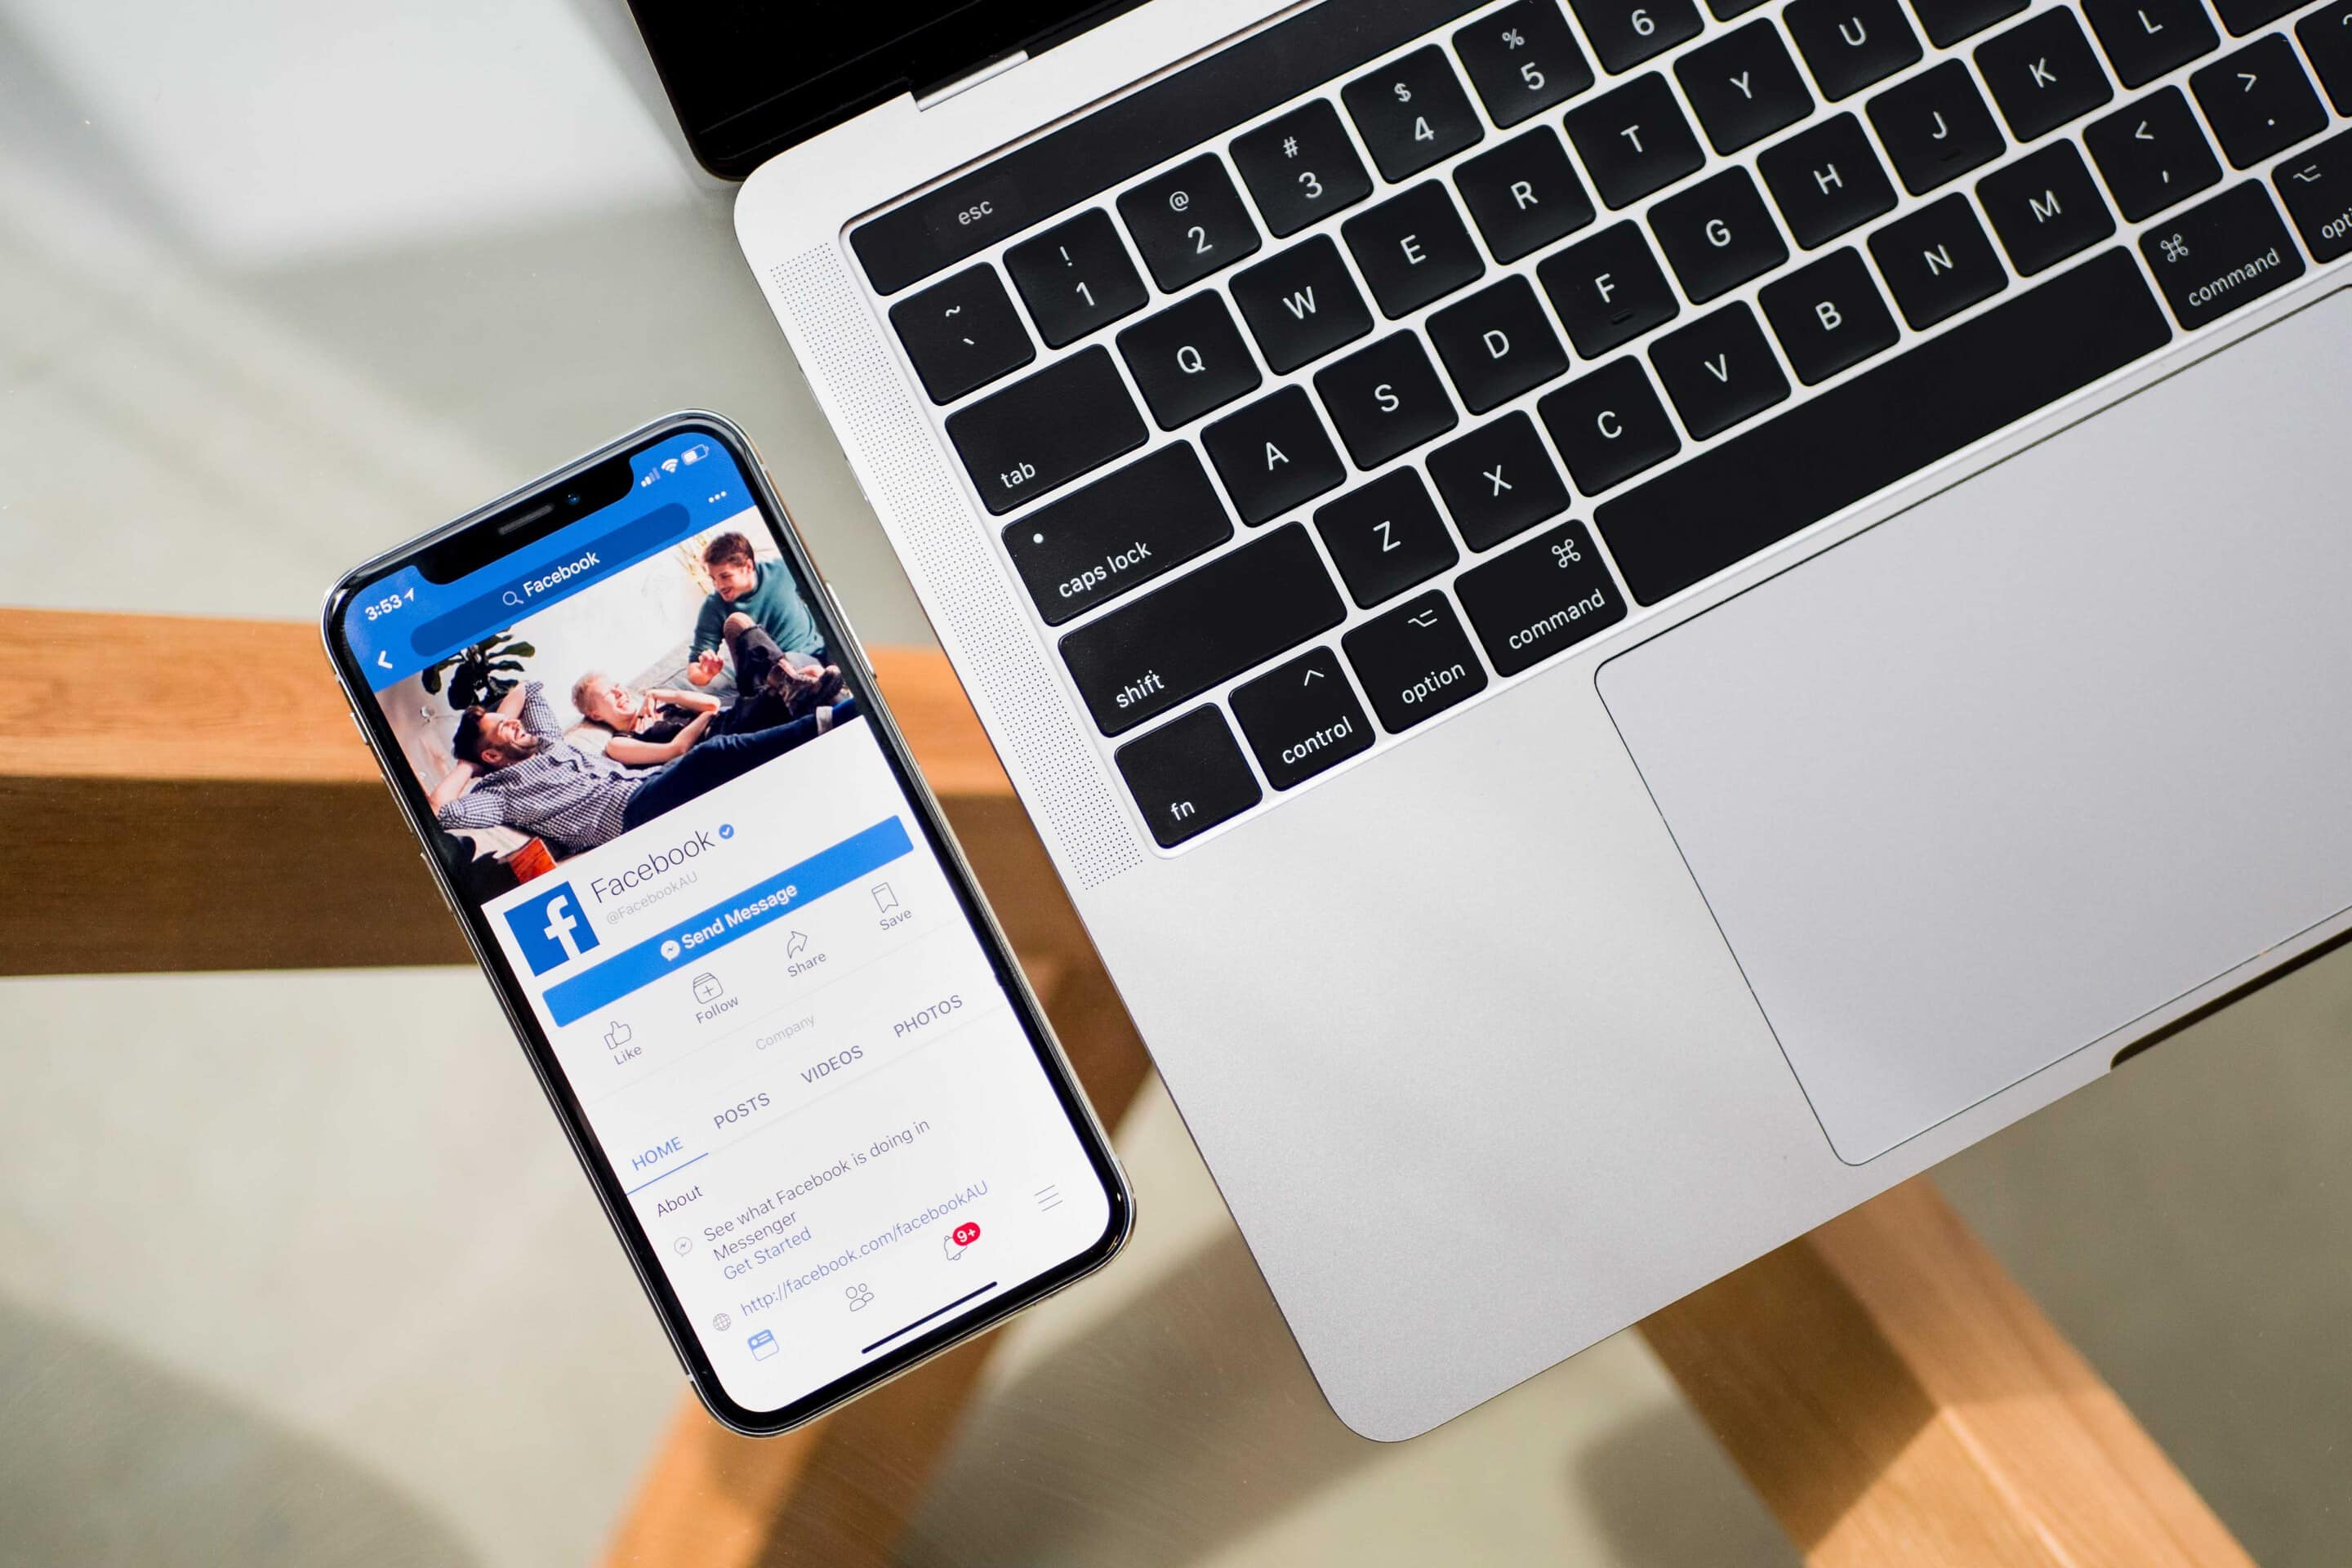 Table with an Apple Mac and phone placed on it. The phone shows a Facebook page on the screen.